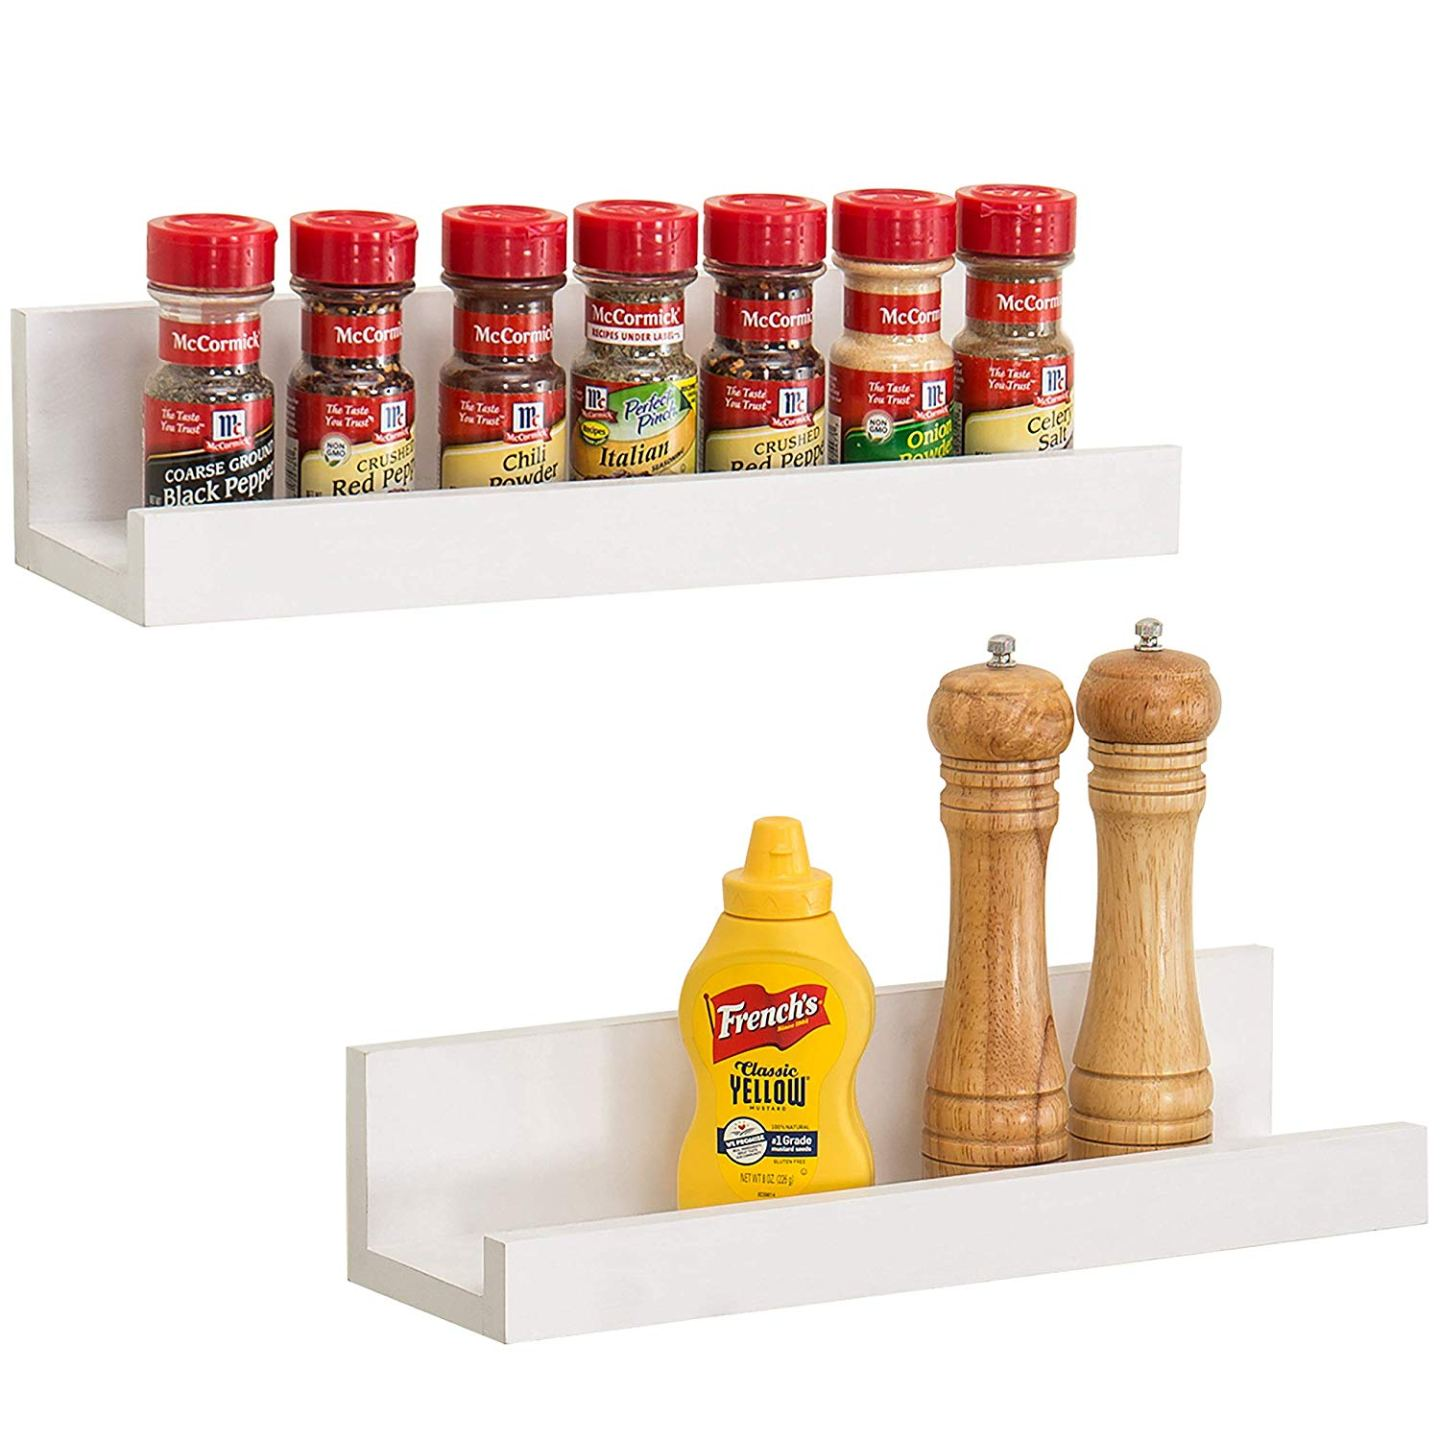 Simple White Ledge for Spice Storage